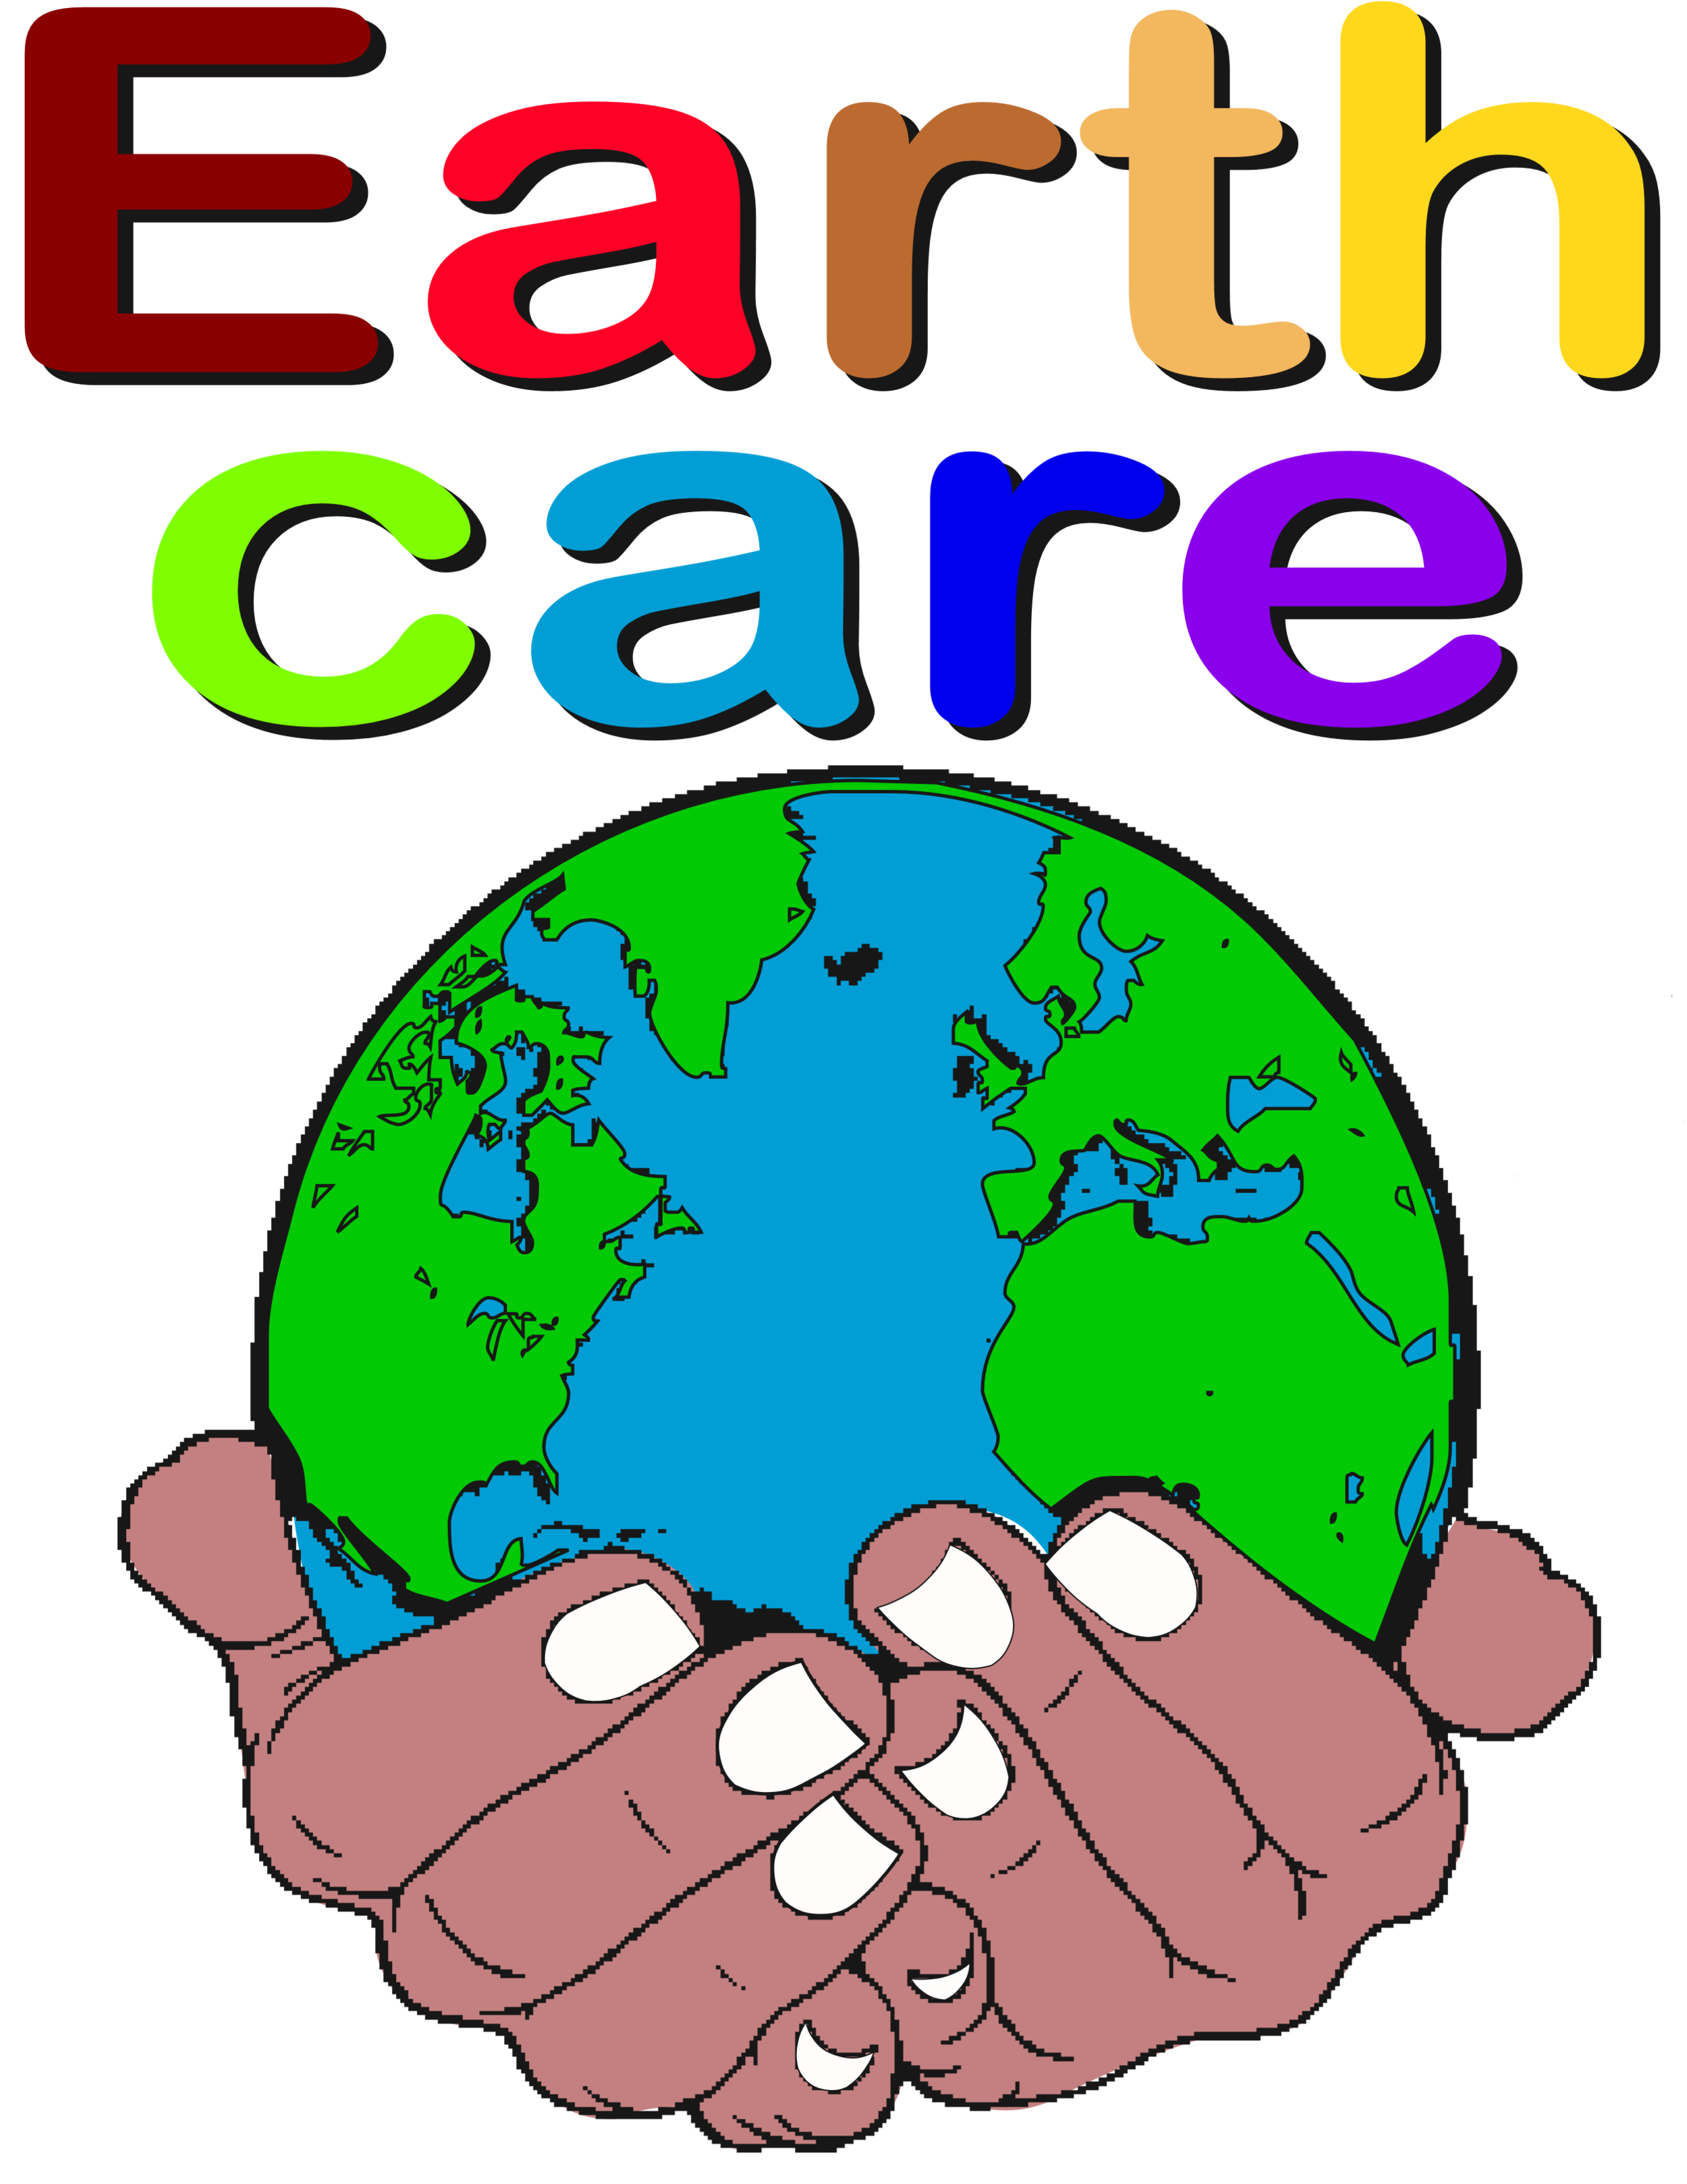 Earthcare LOGO CROPPED.png